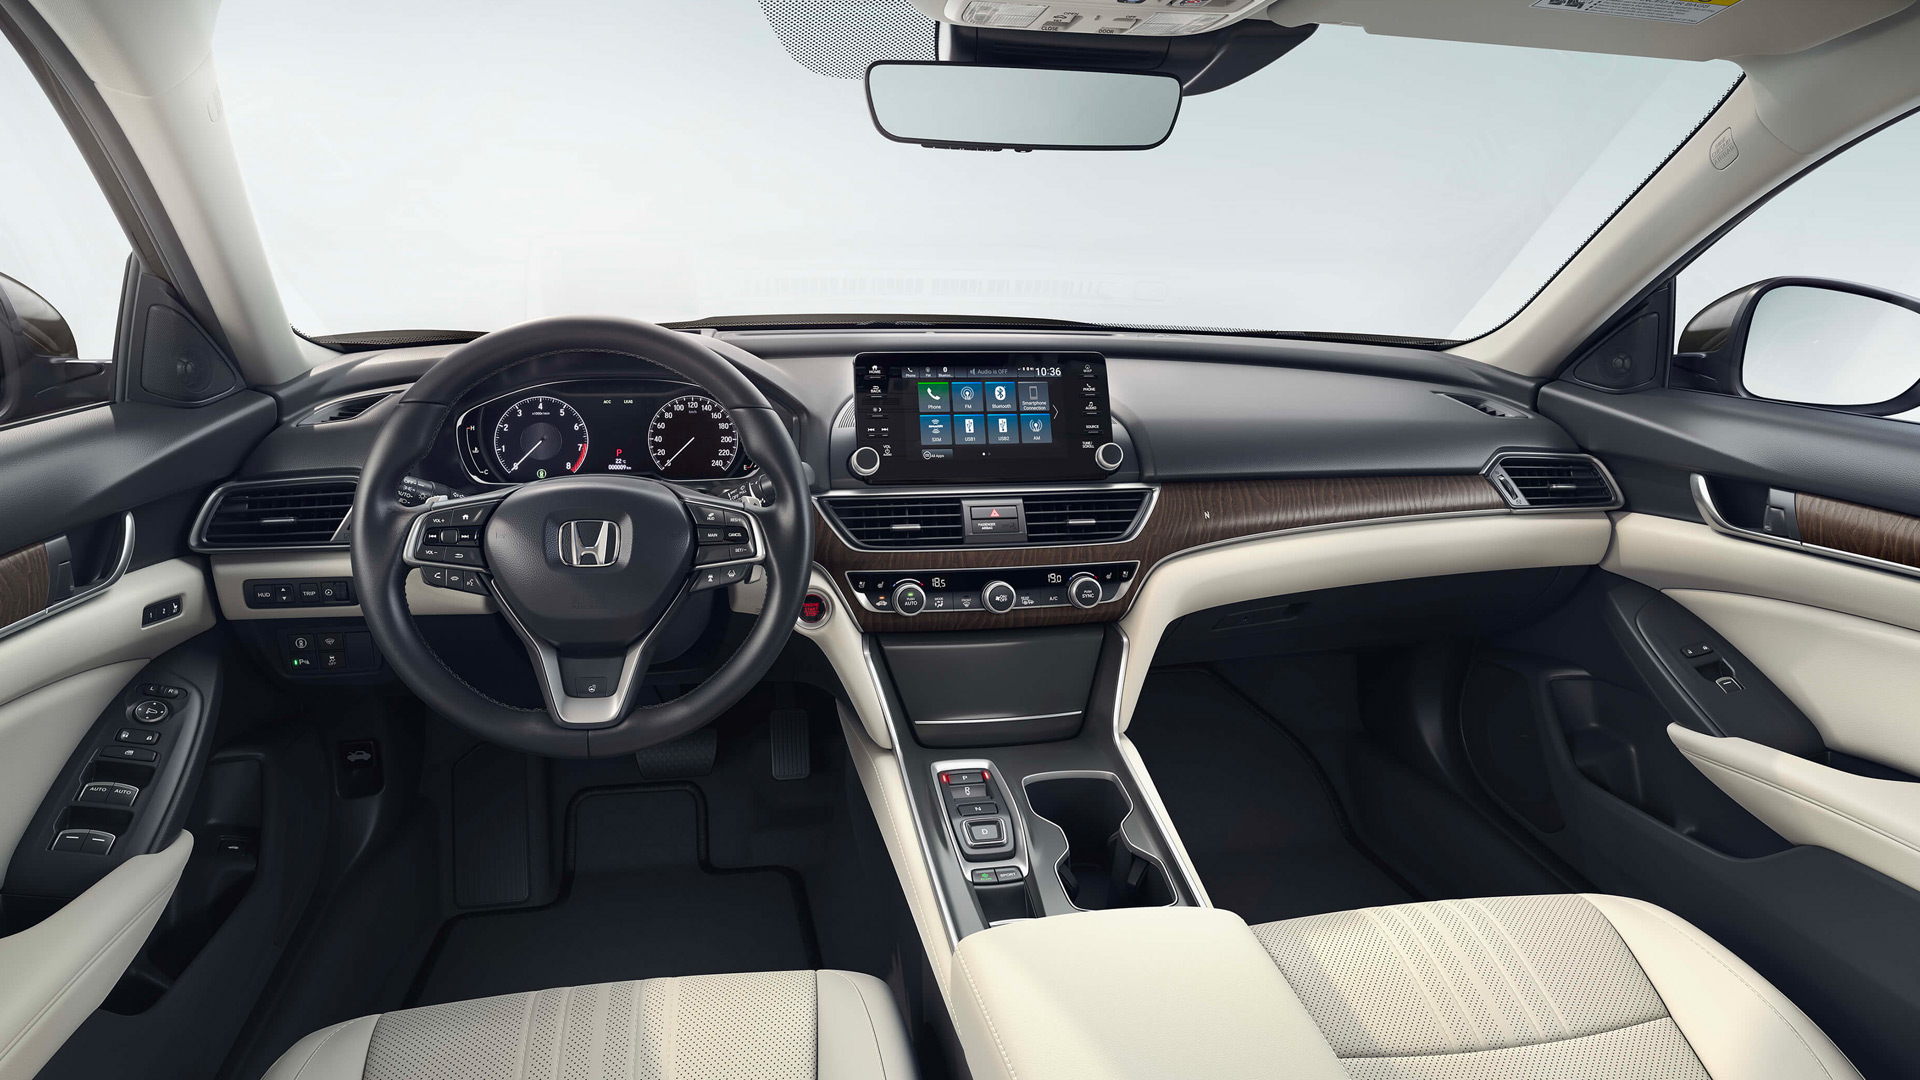 2020 Accord Interior Dash View